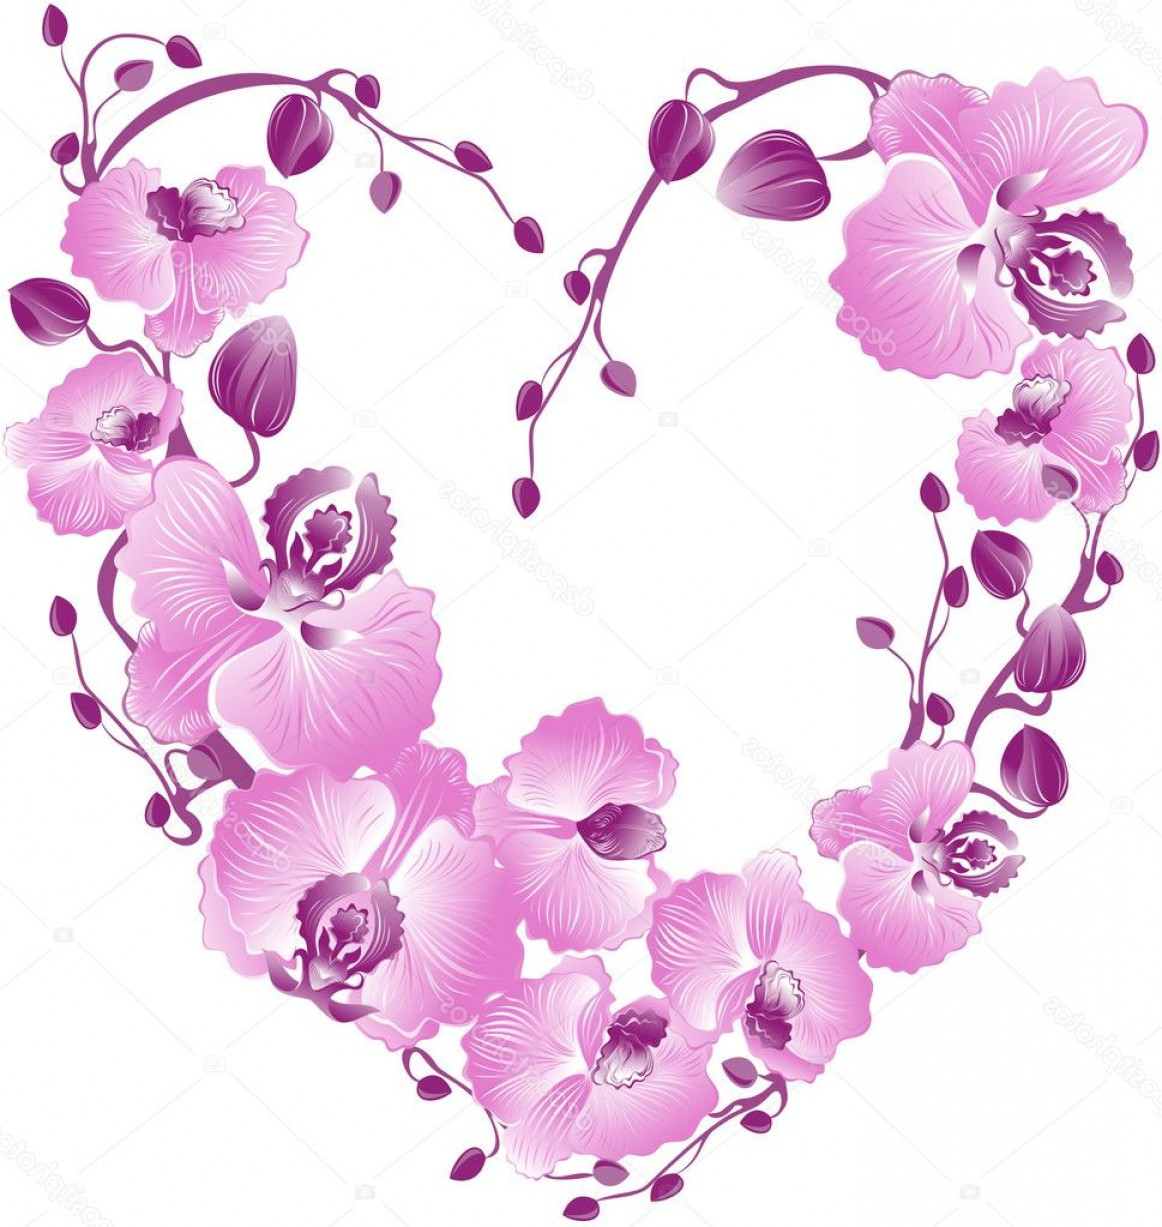 Purple Orchid Vector: Stock Illustration Heart From Purple Orchid Vector